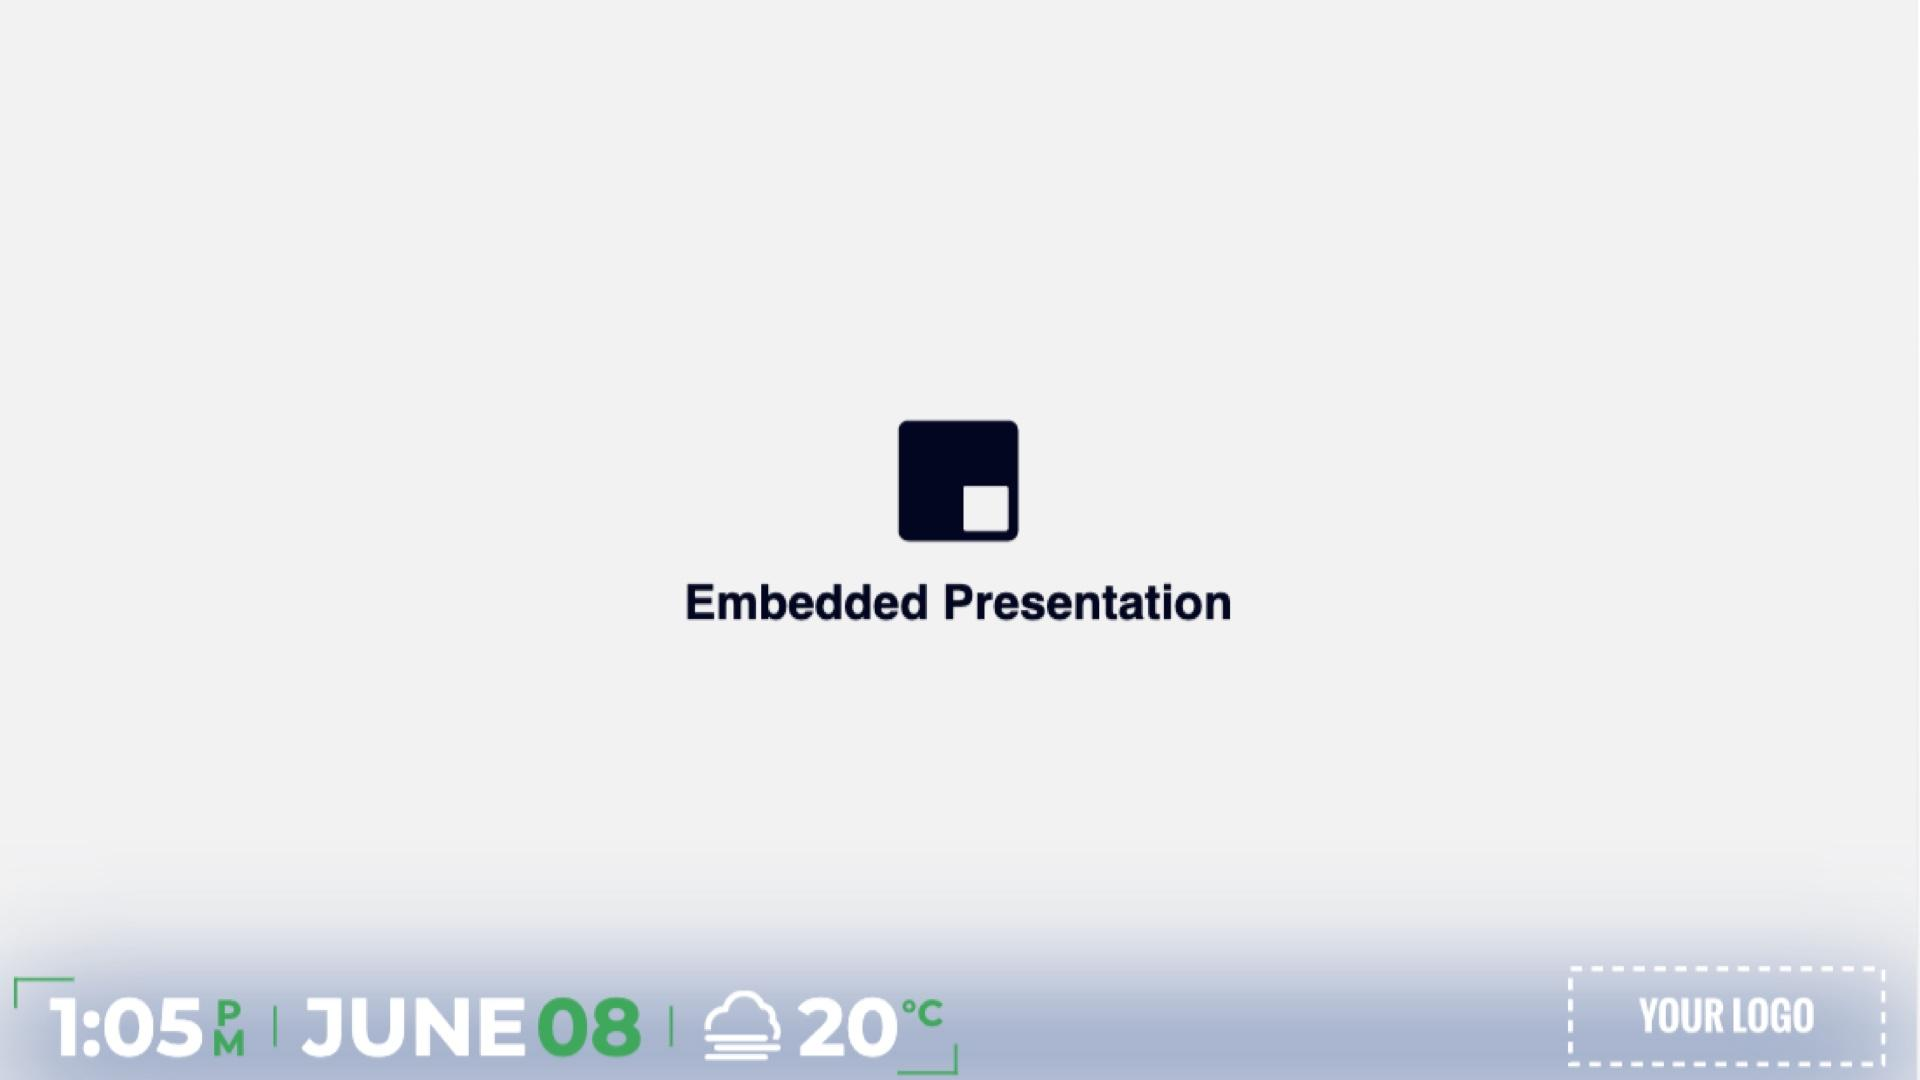 Full Screen Minimal Embedded Presentation Digital Signage Template